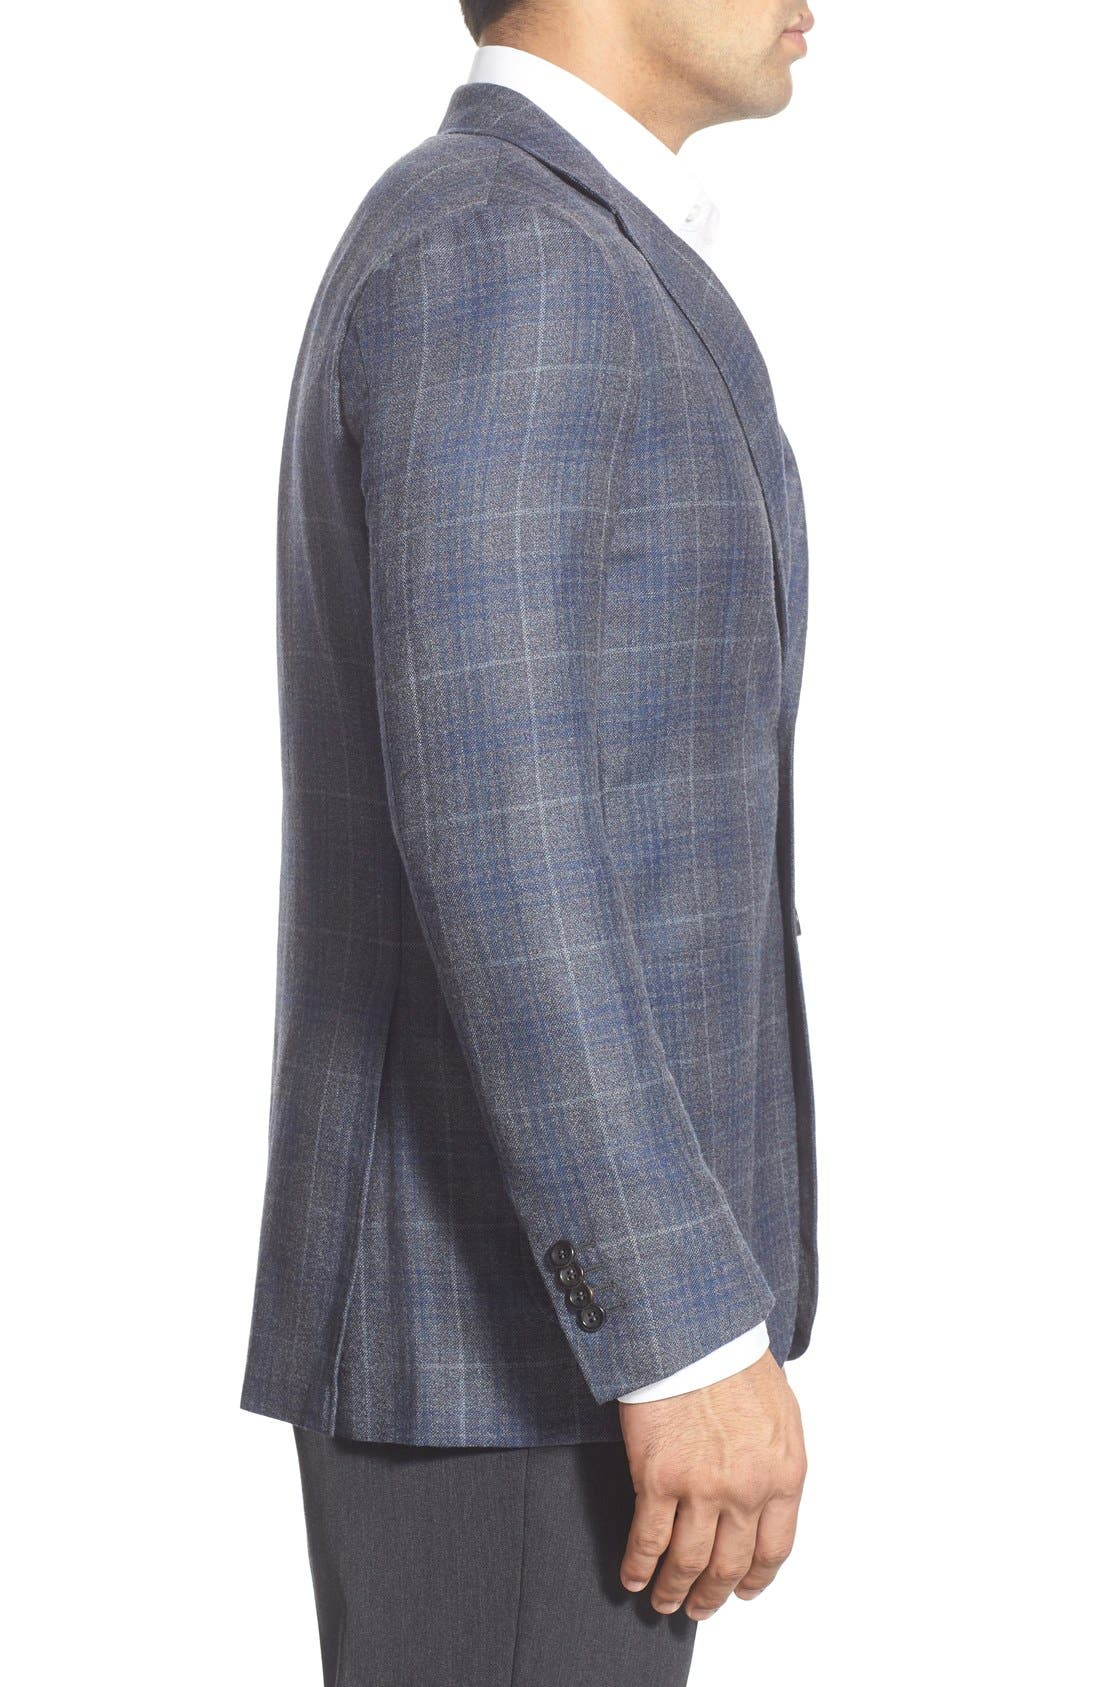 CANALI,                             Classic Fit Plaid Wool Sport Coat,                             Alternate thumbnail 4, color,                             030